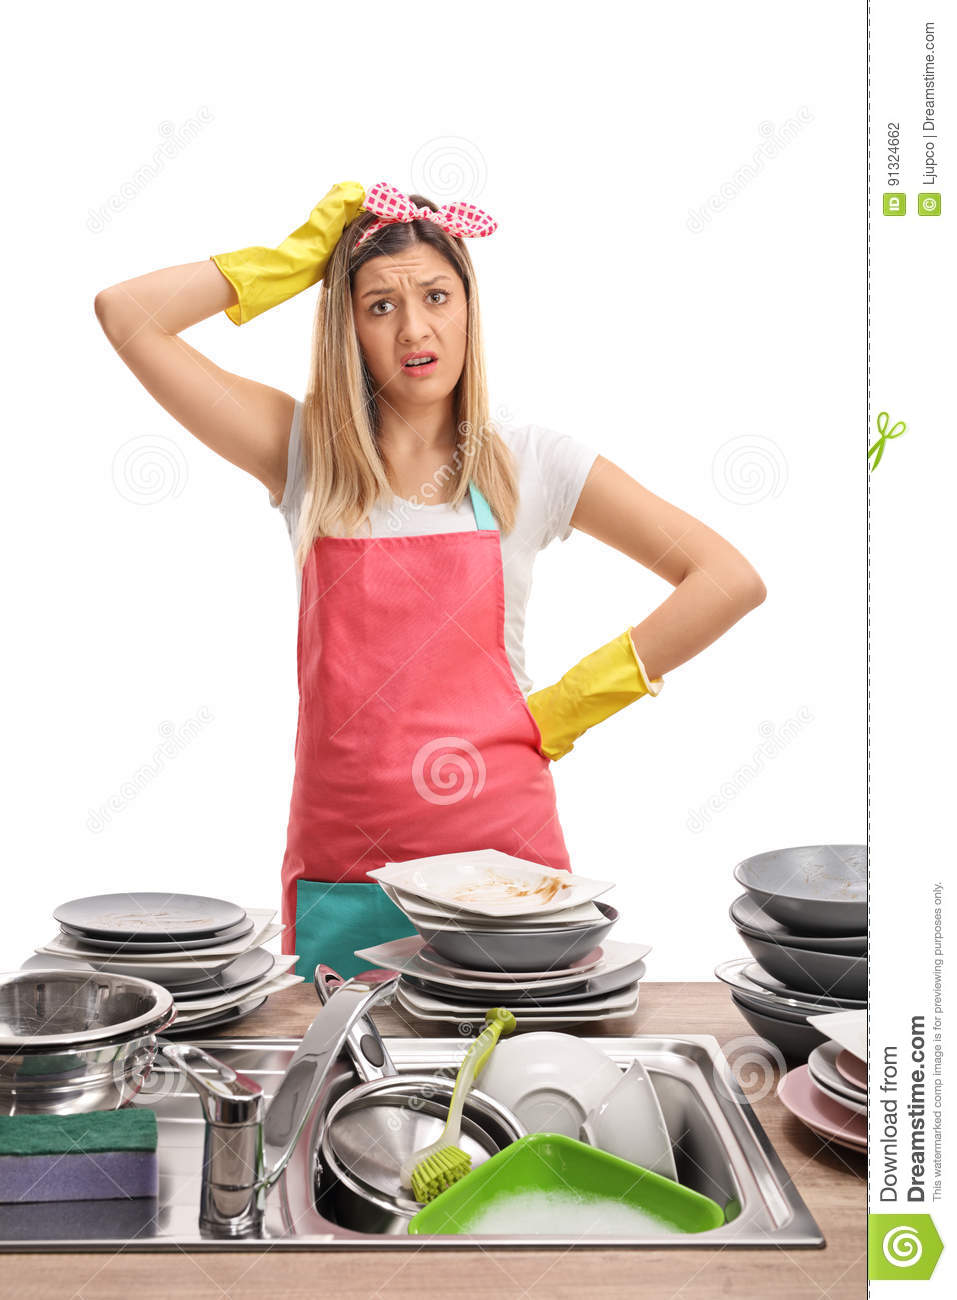 Upset young woman behind a sink filled with dirty plates